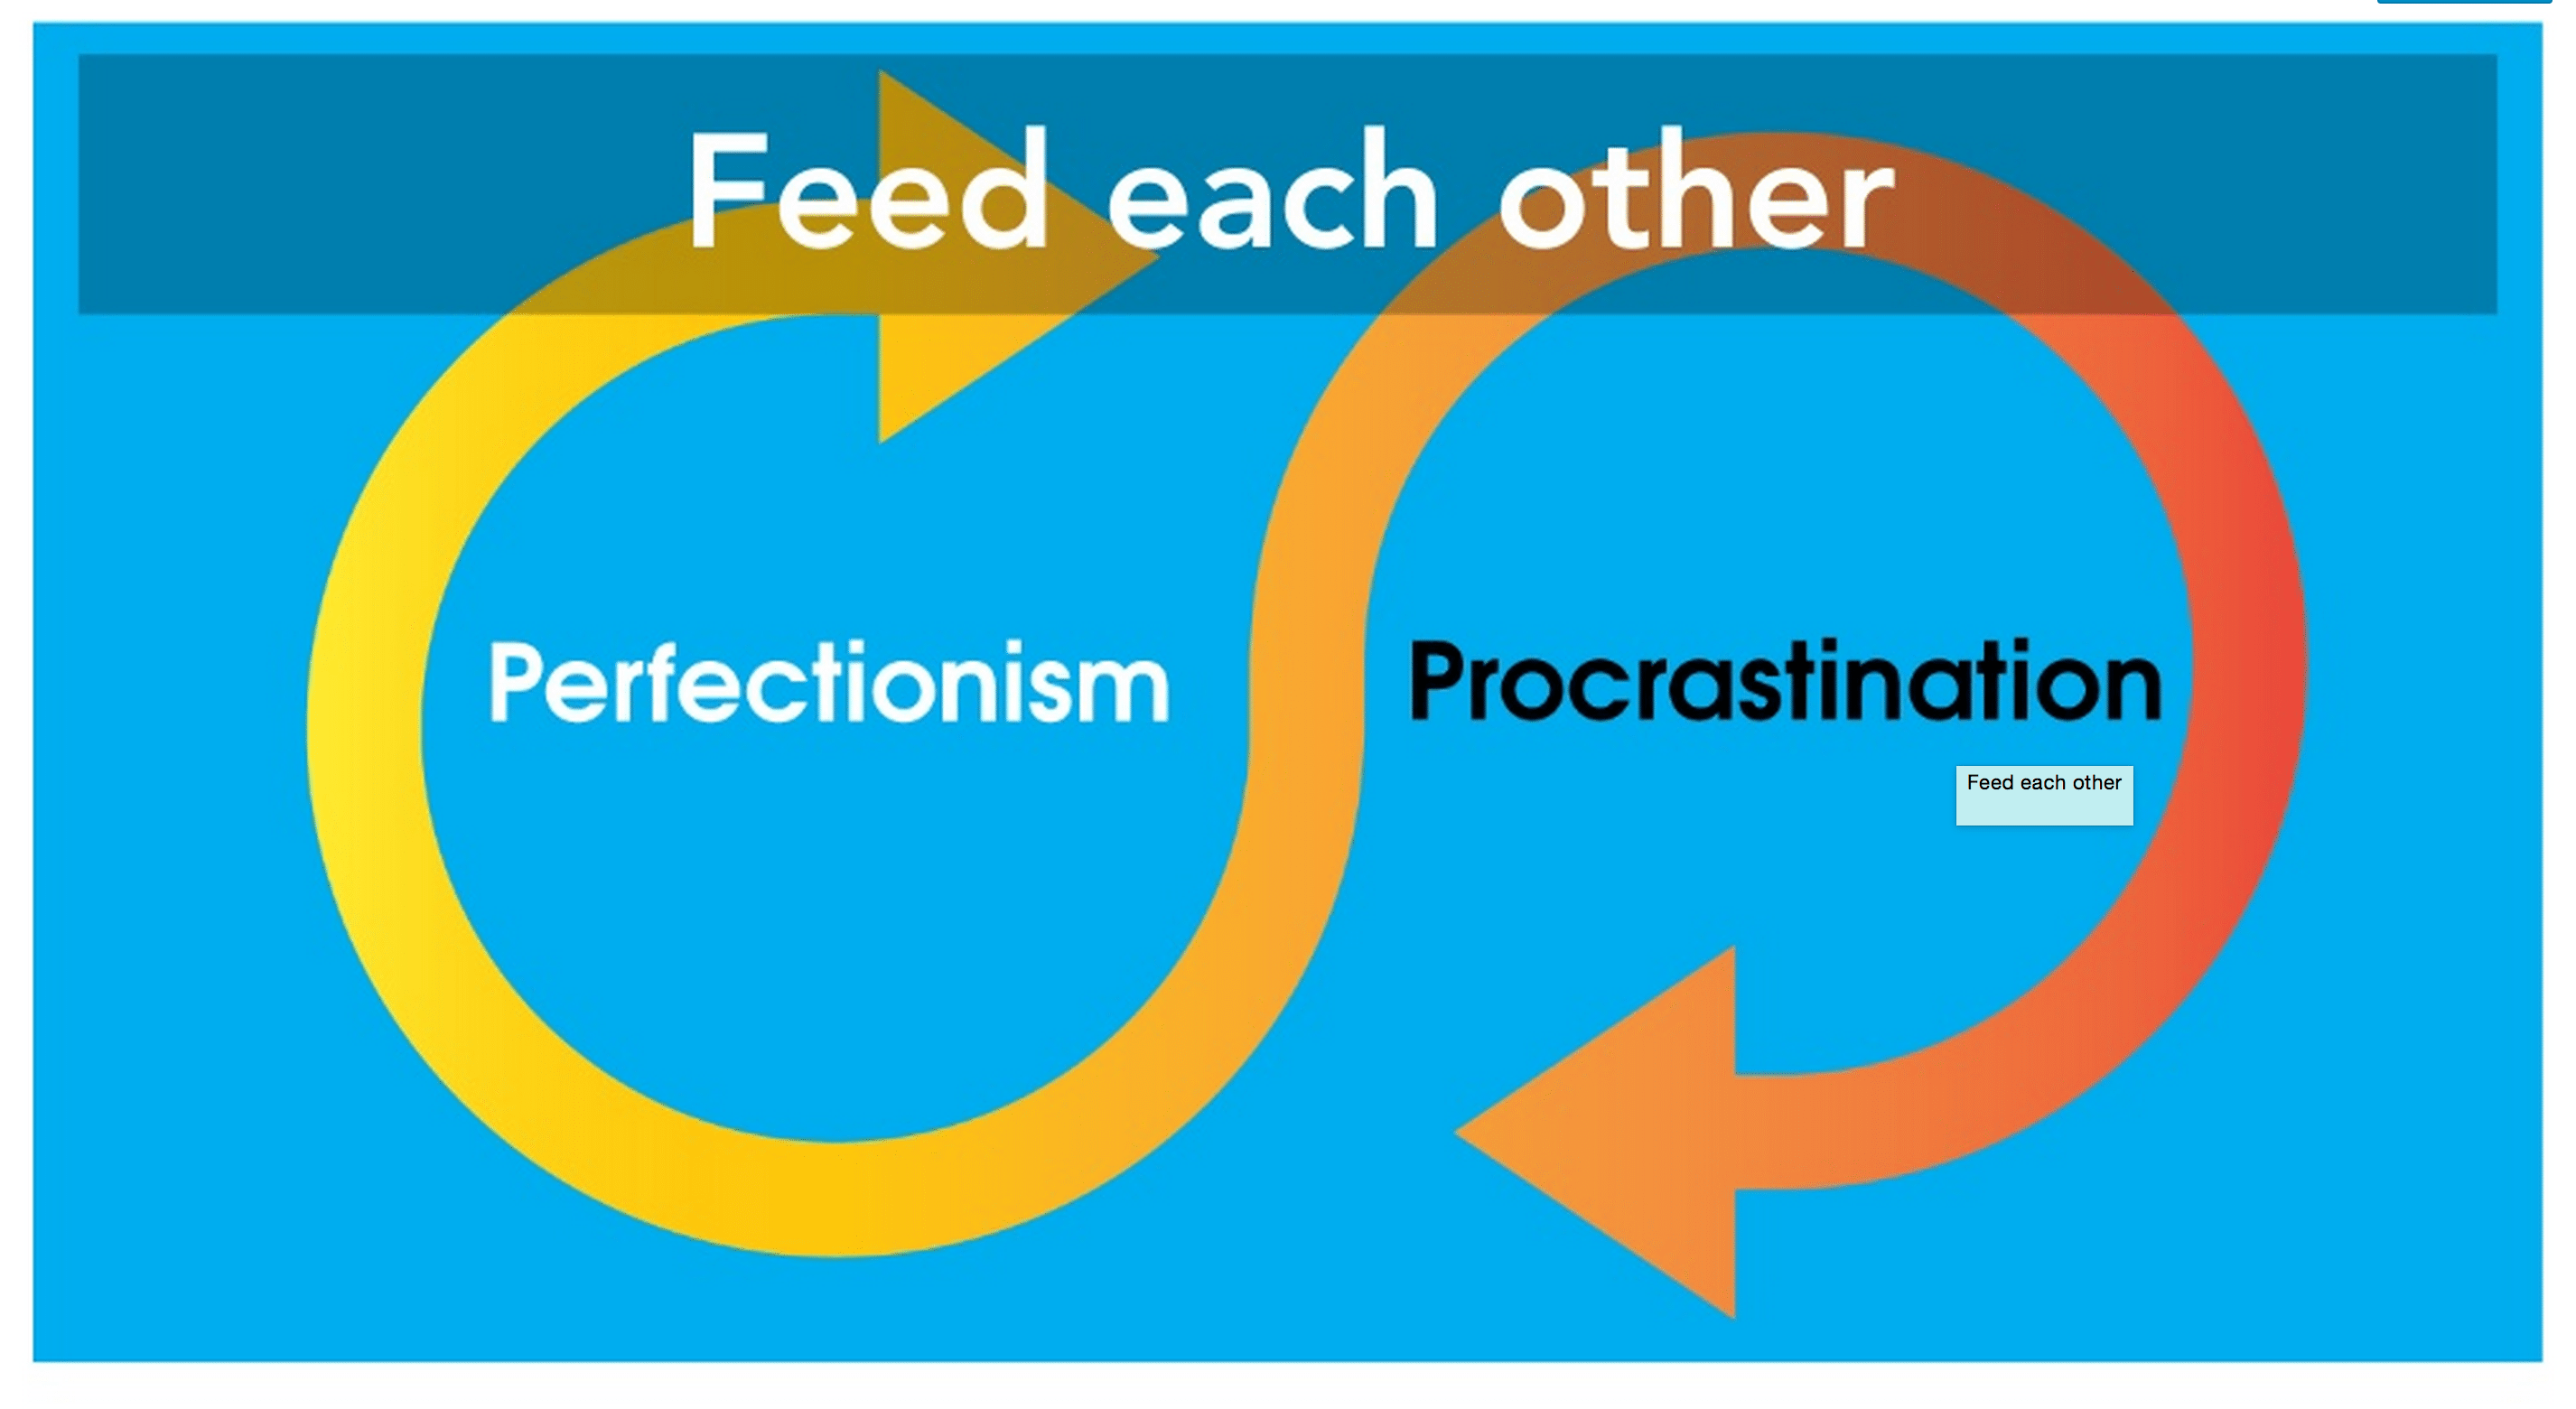 perfectionism and procrastination diagram feeding into eachother